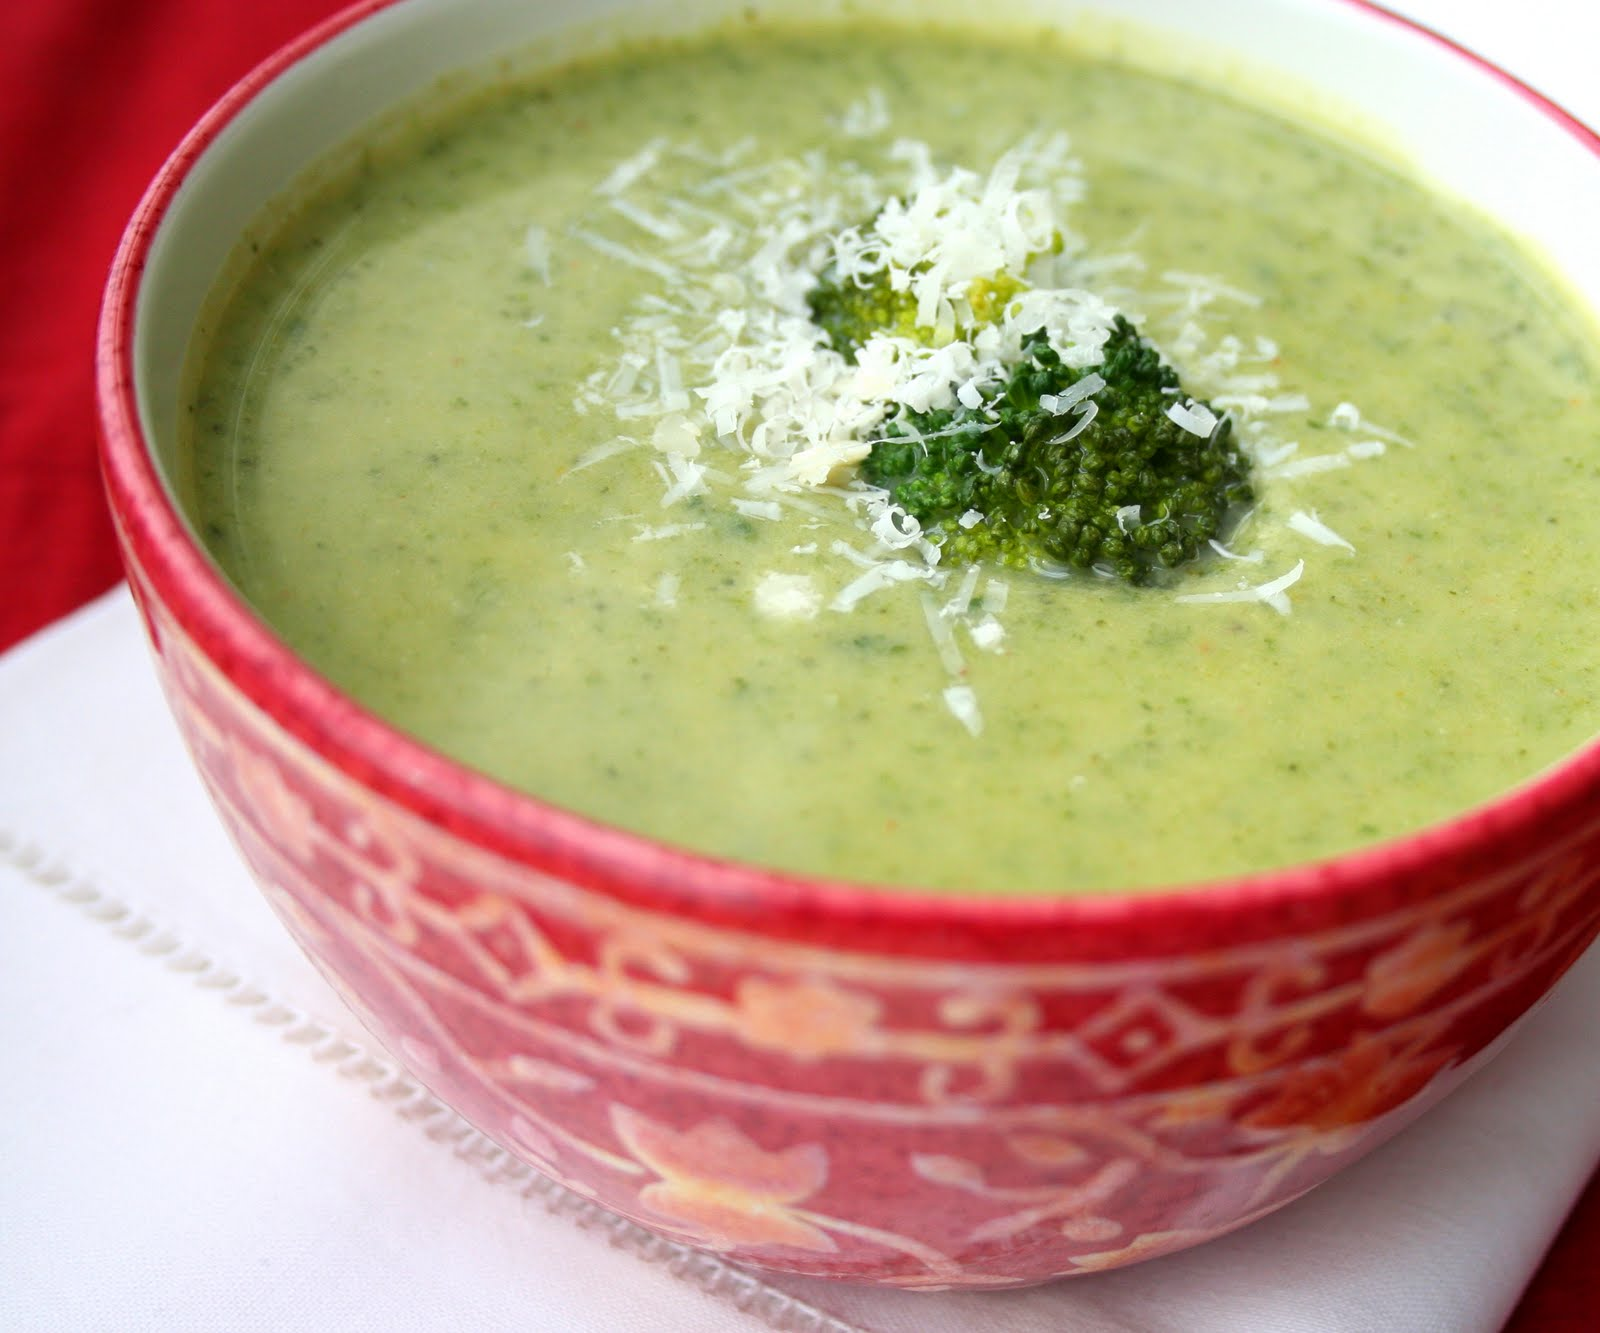 Simply one of the best low carb broccoli cheese soup recipes around ...